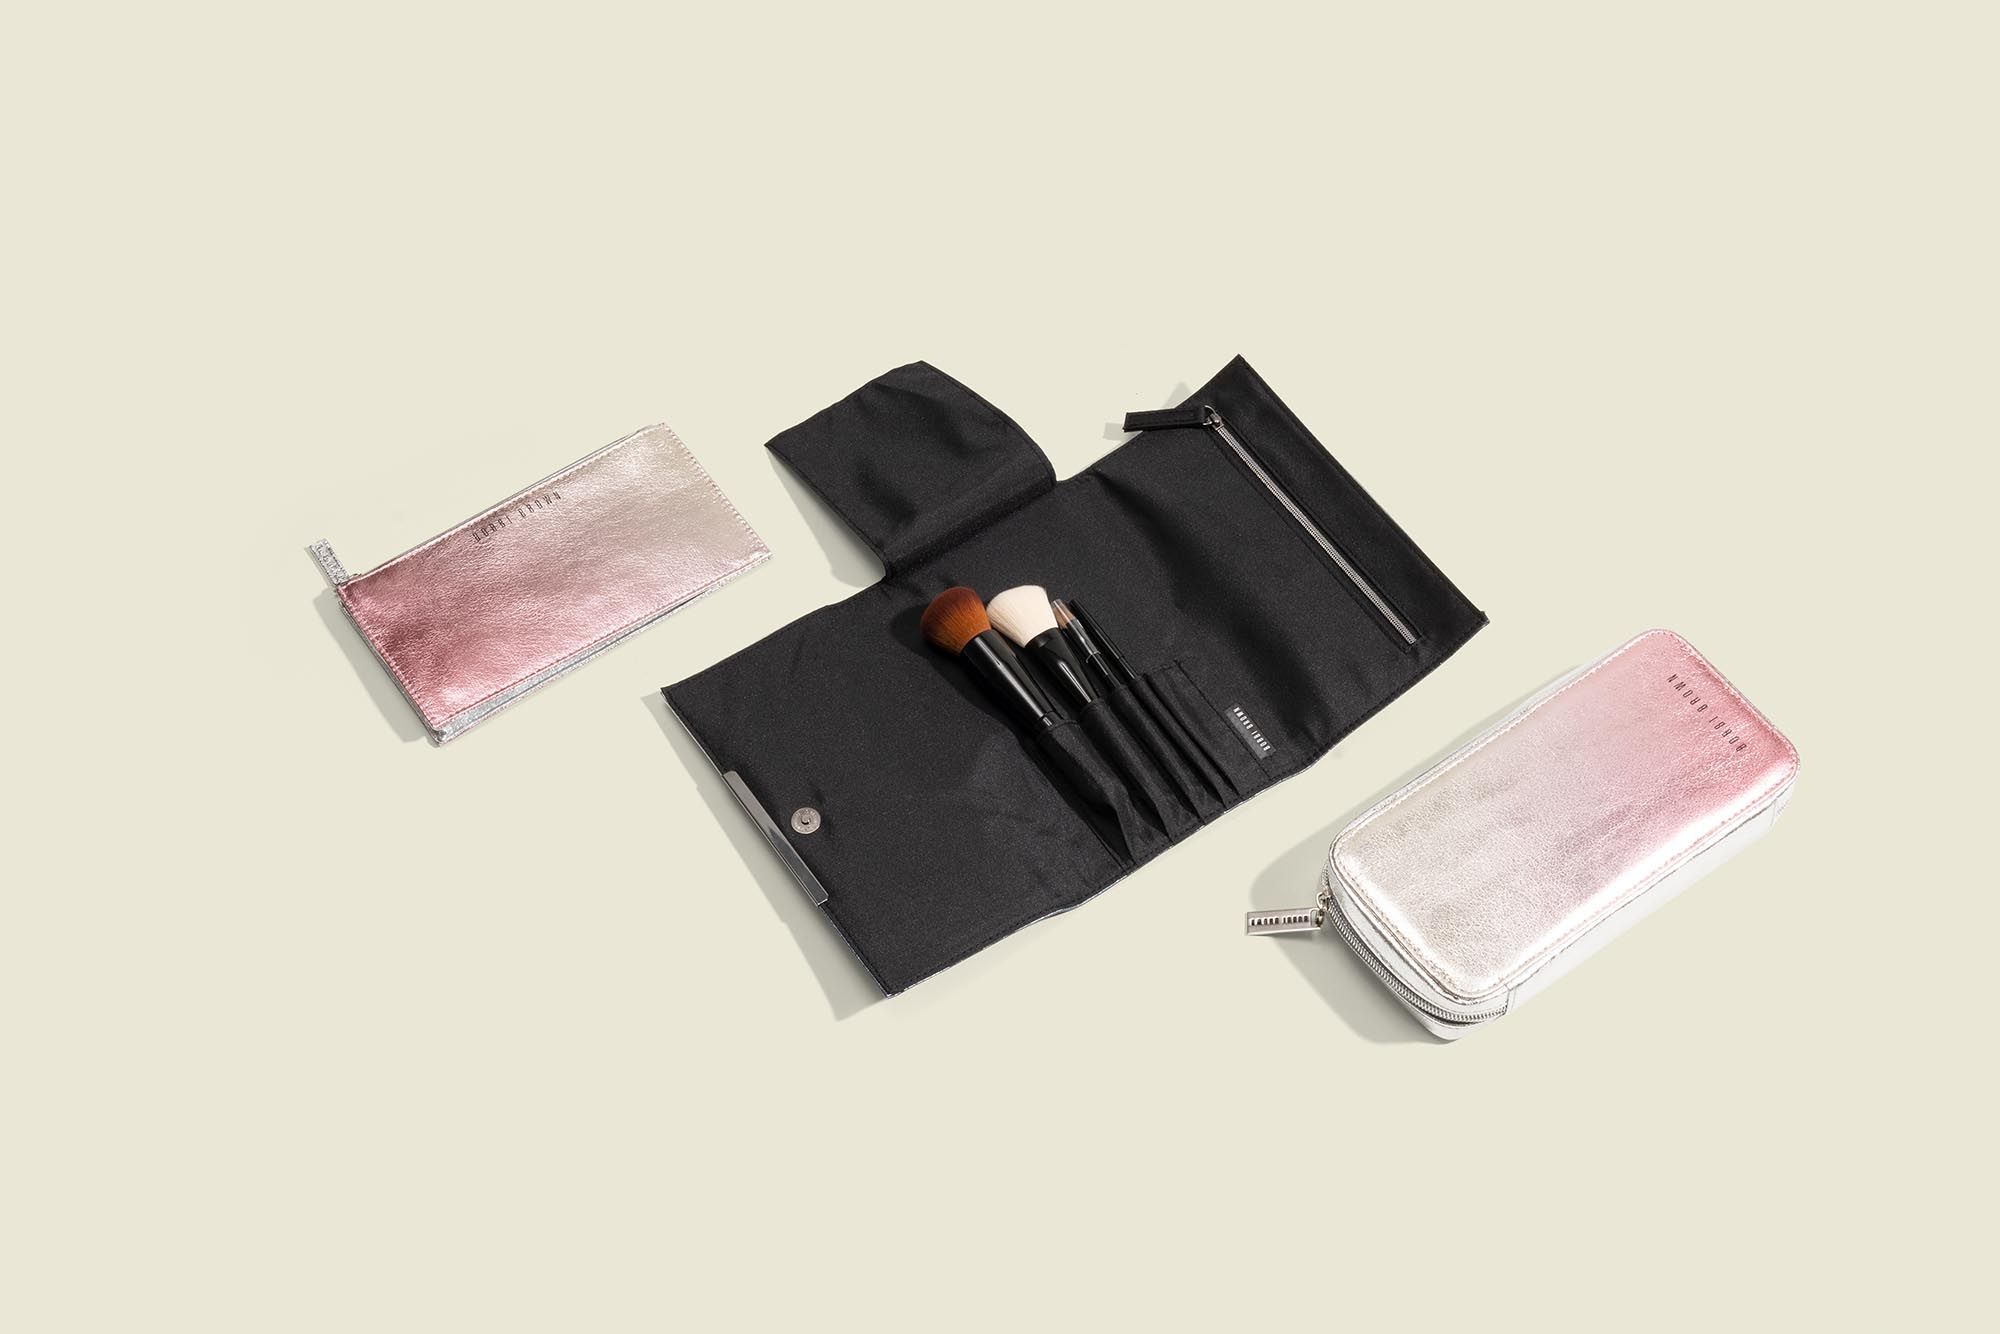 Flat zip pouches with makeup kit